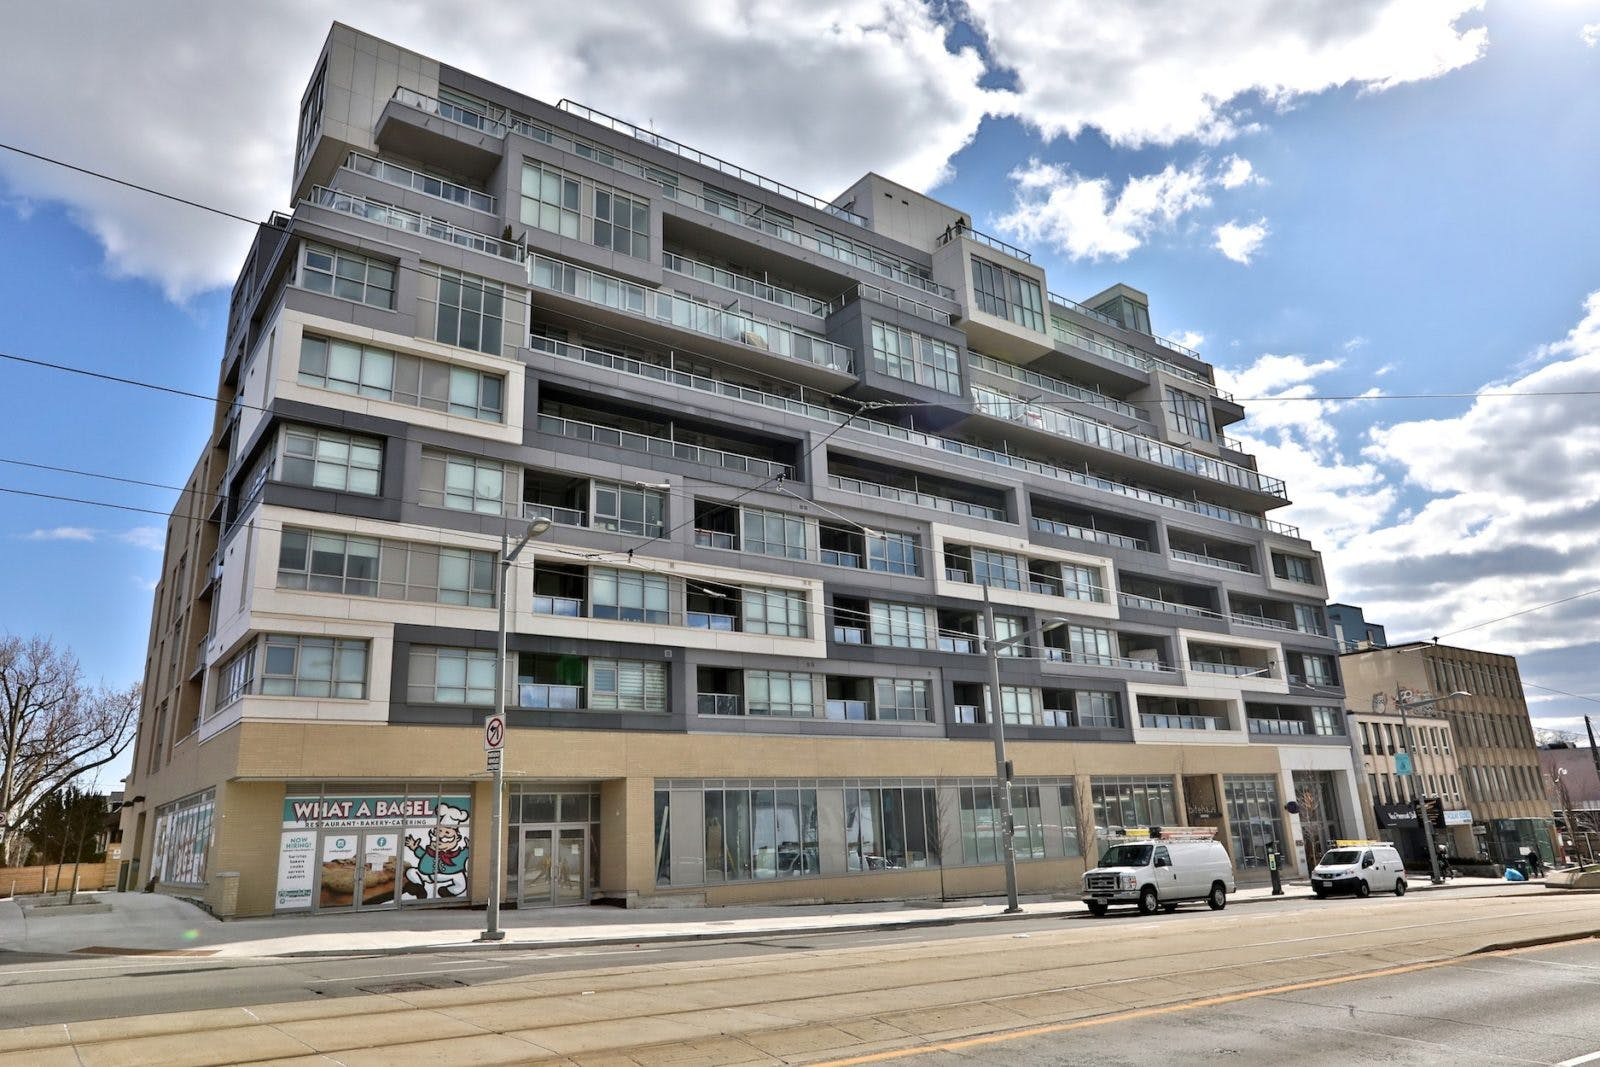 835 St Clair West exterior